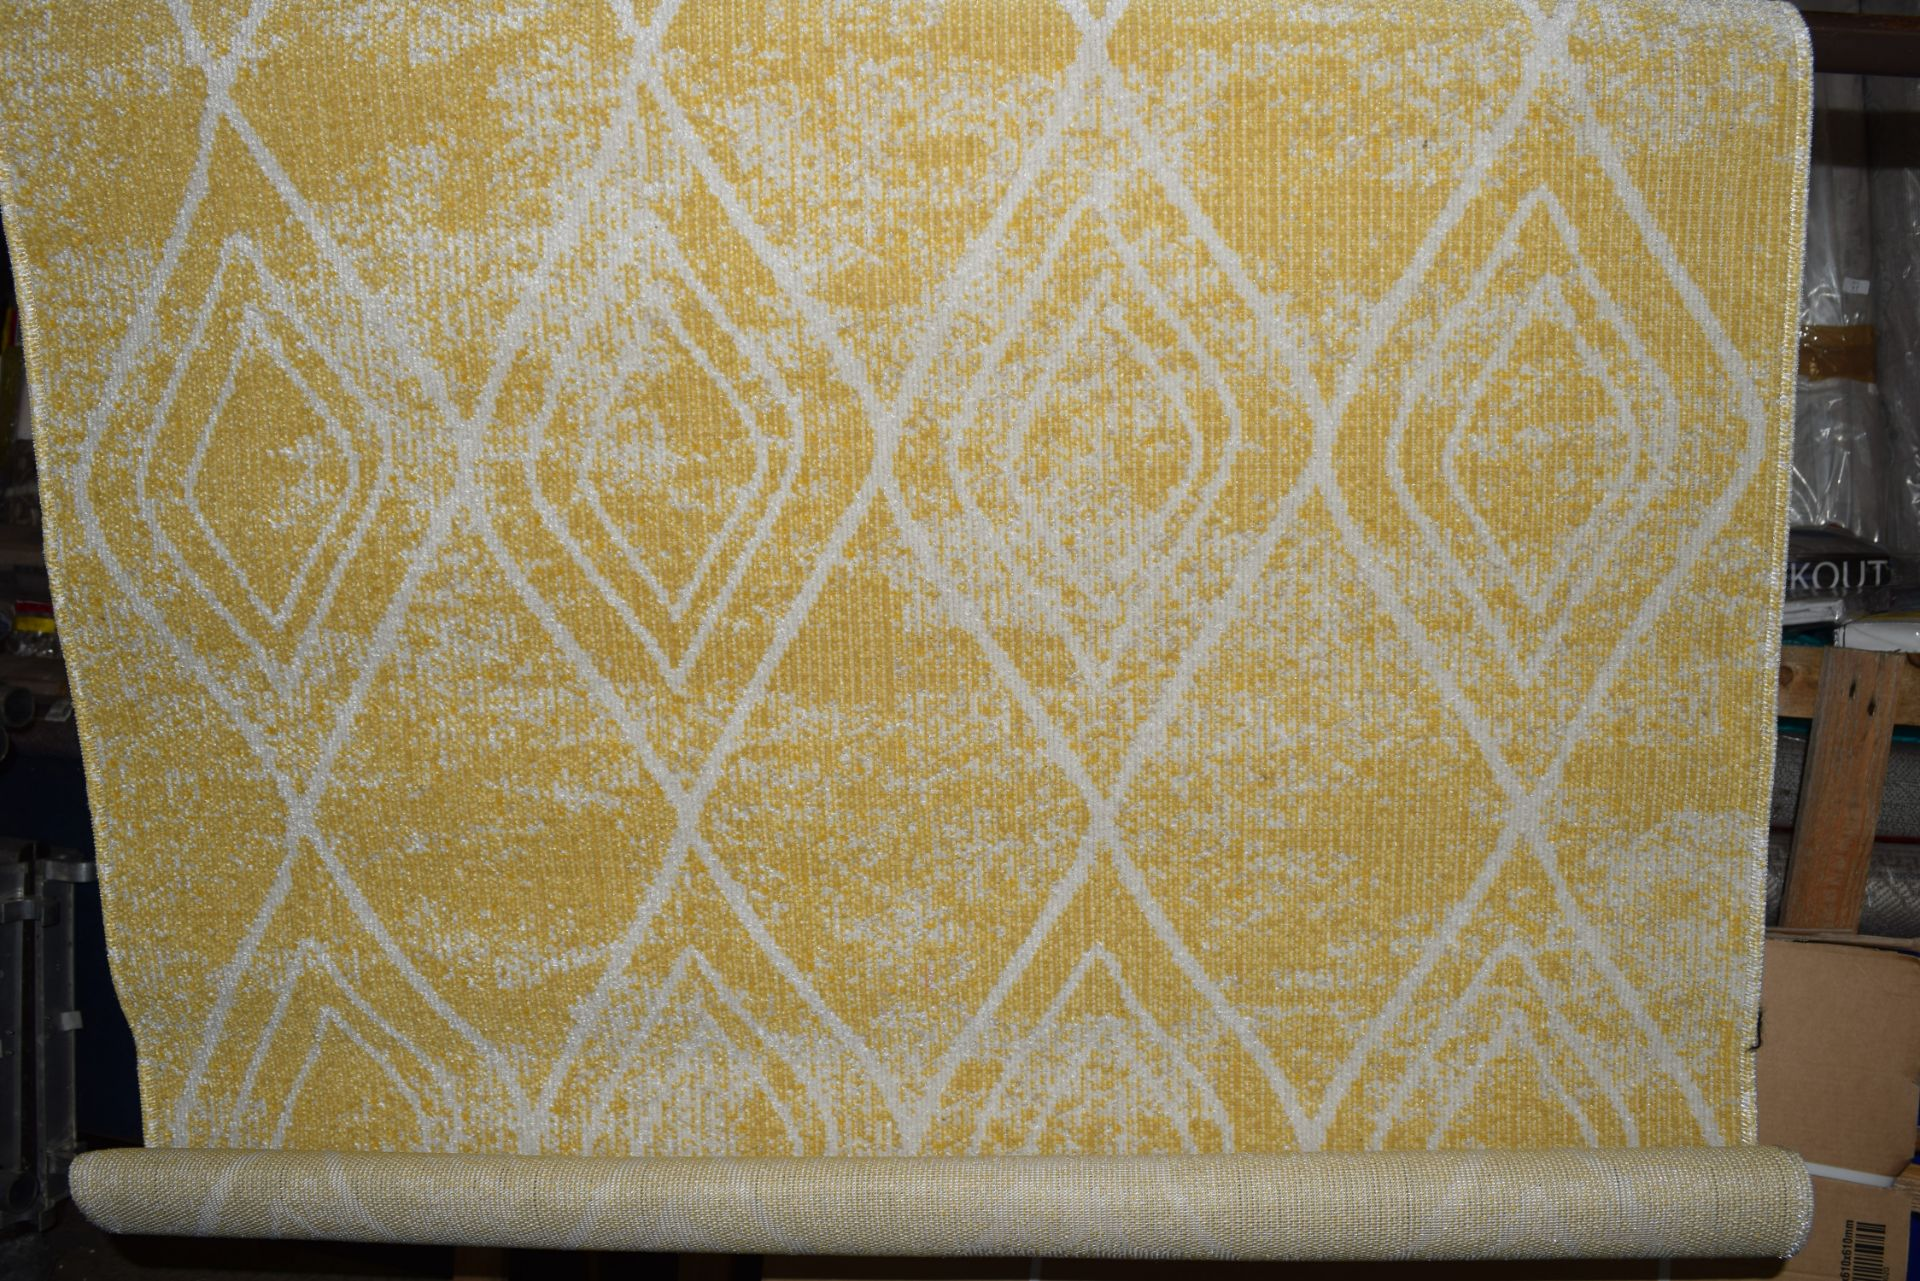 World Menagerie Margaret flat weave yellow/outdoor rug, RRP £54.99 - Image 2 of 3